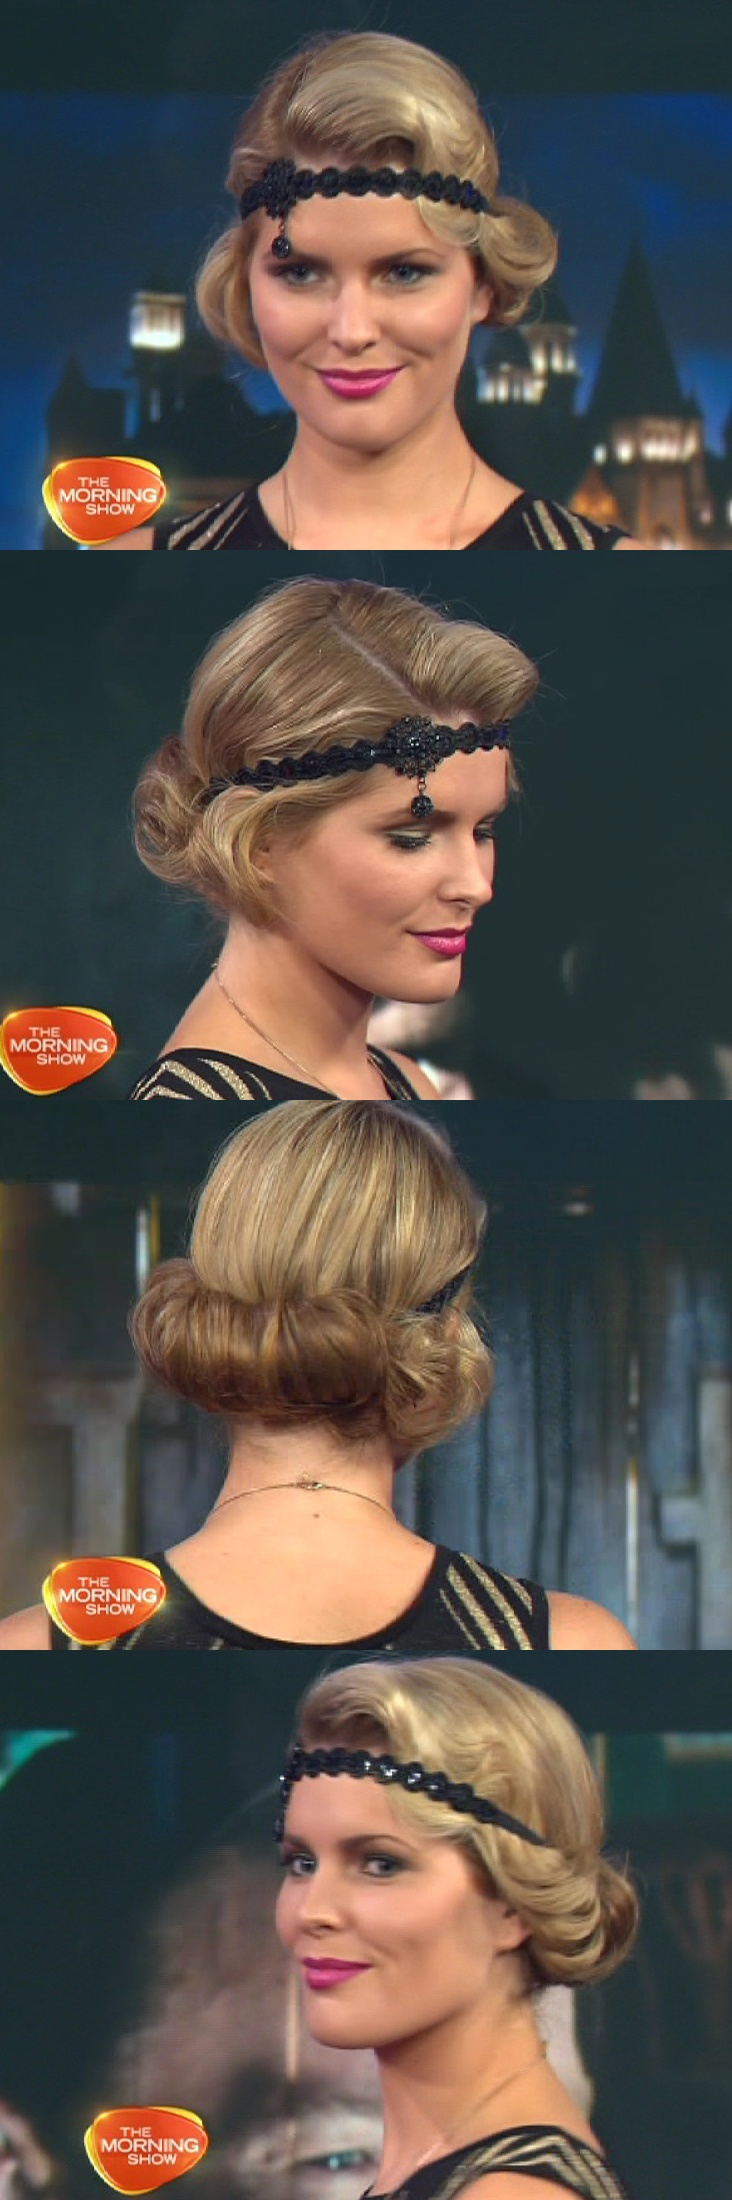 20's Hairstyle with a headband and fingerwave -- Tia is this what you were thinking?